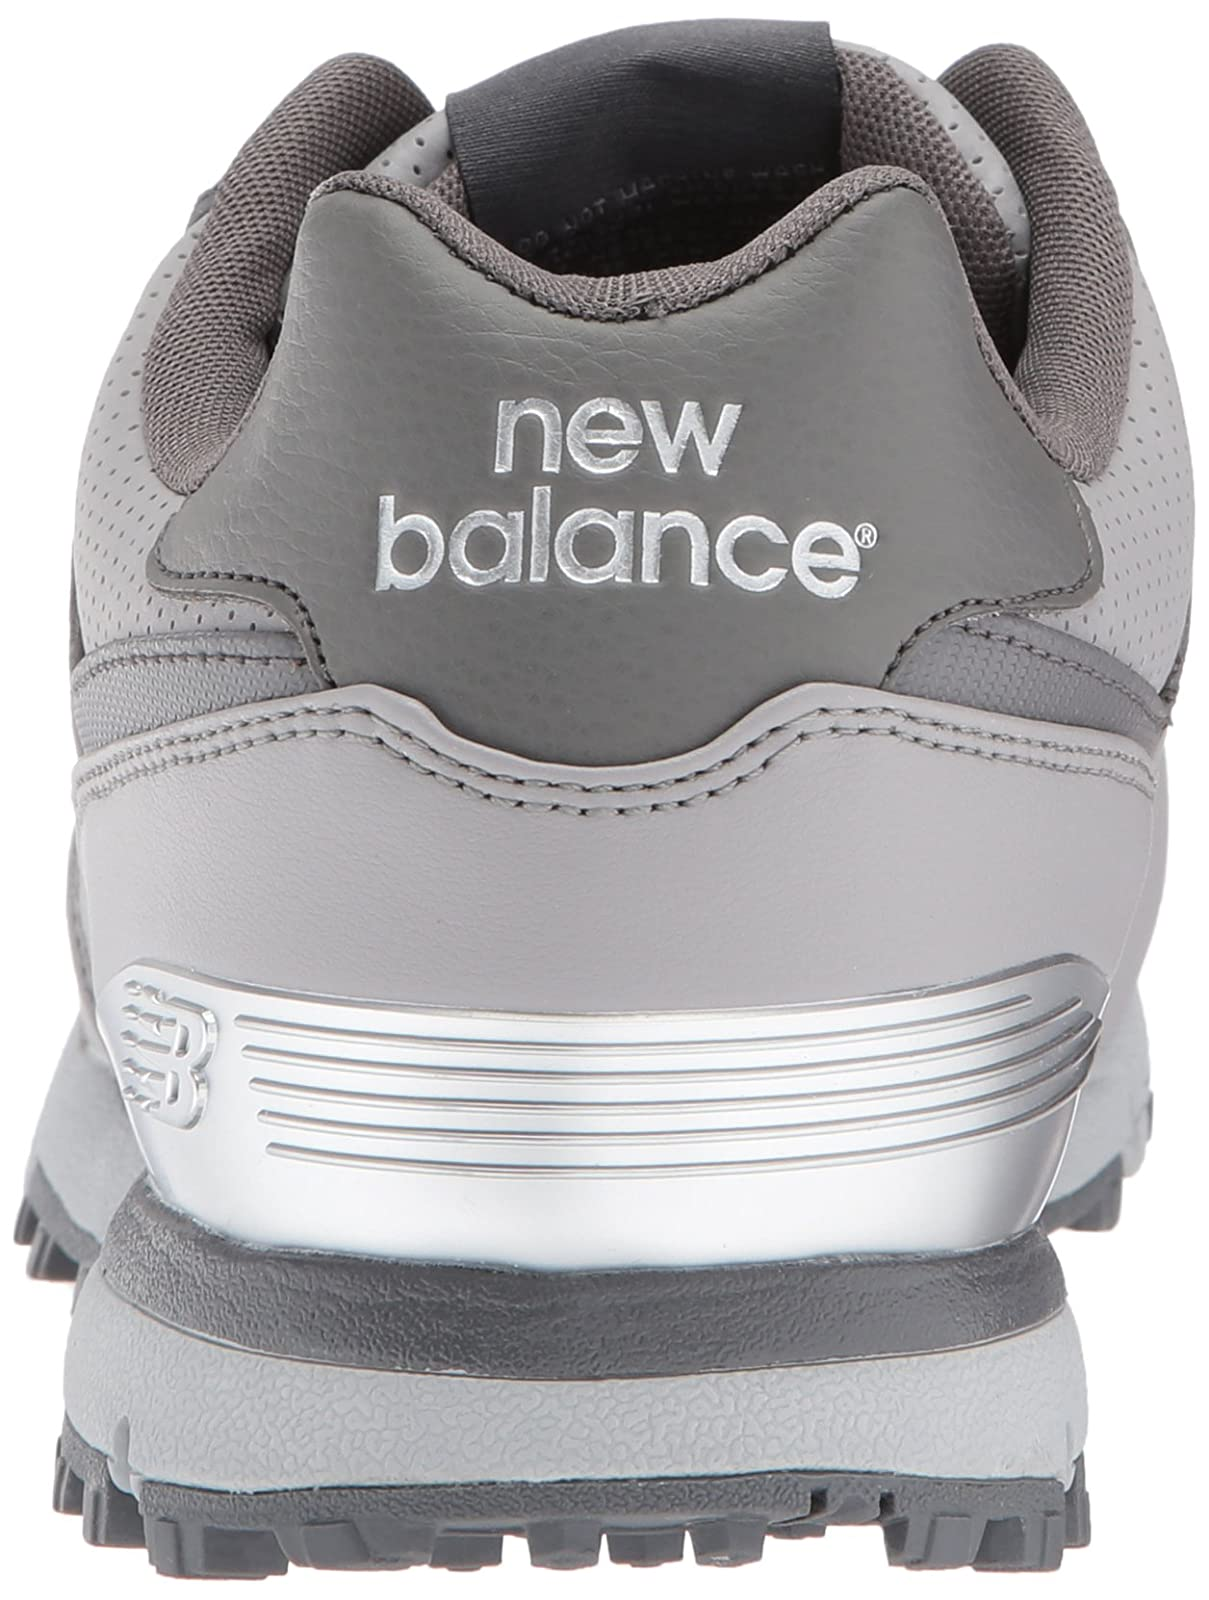 best loved 28938 a7be6 ... New Balance Men s 574 SL Golf Shoe White Large - 2 ...